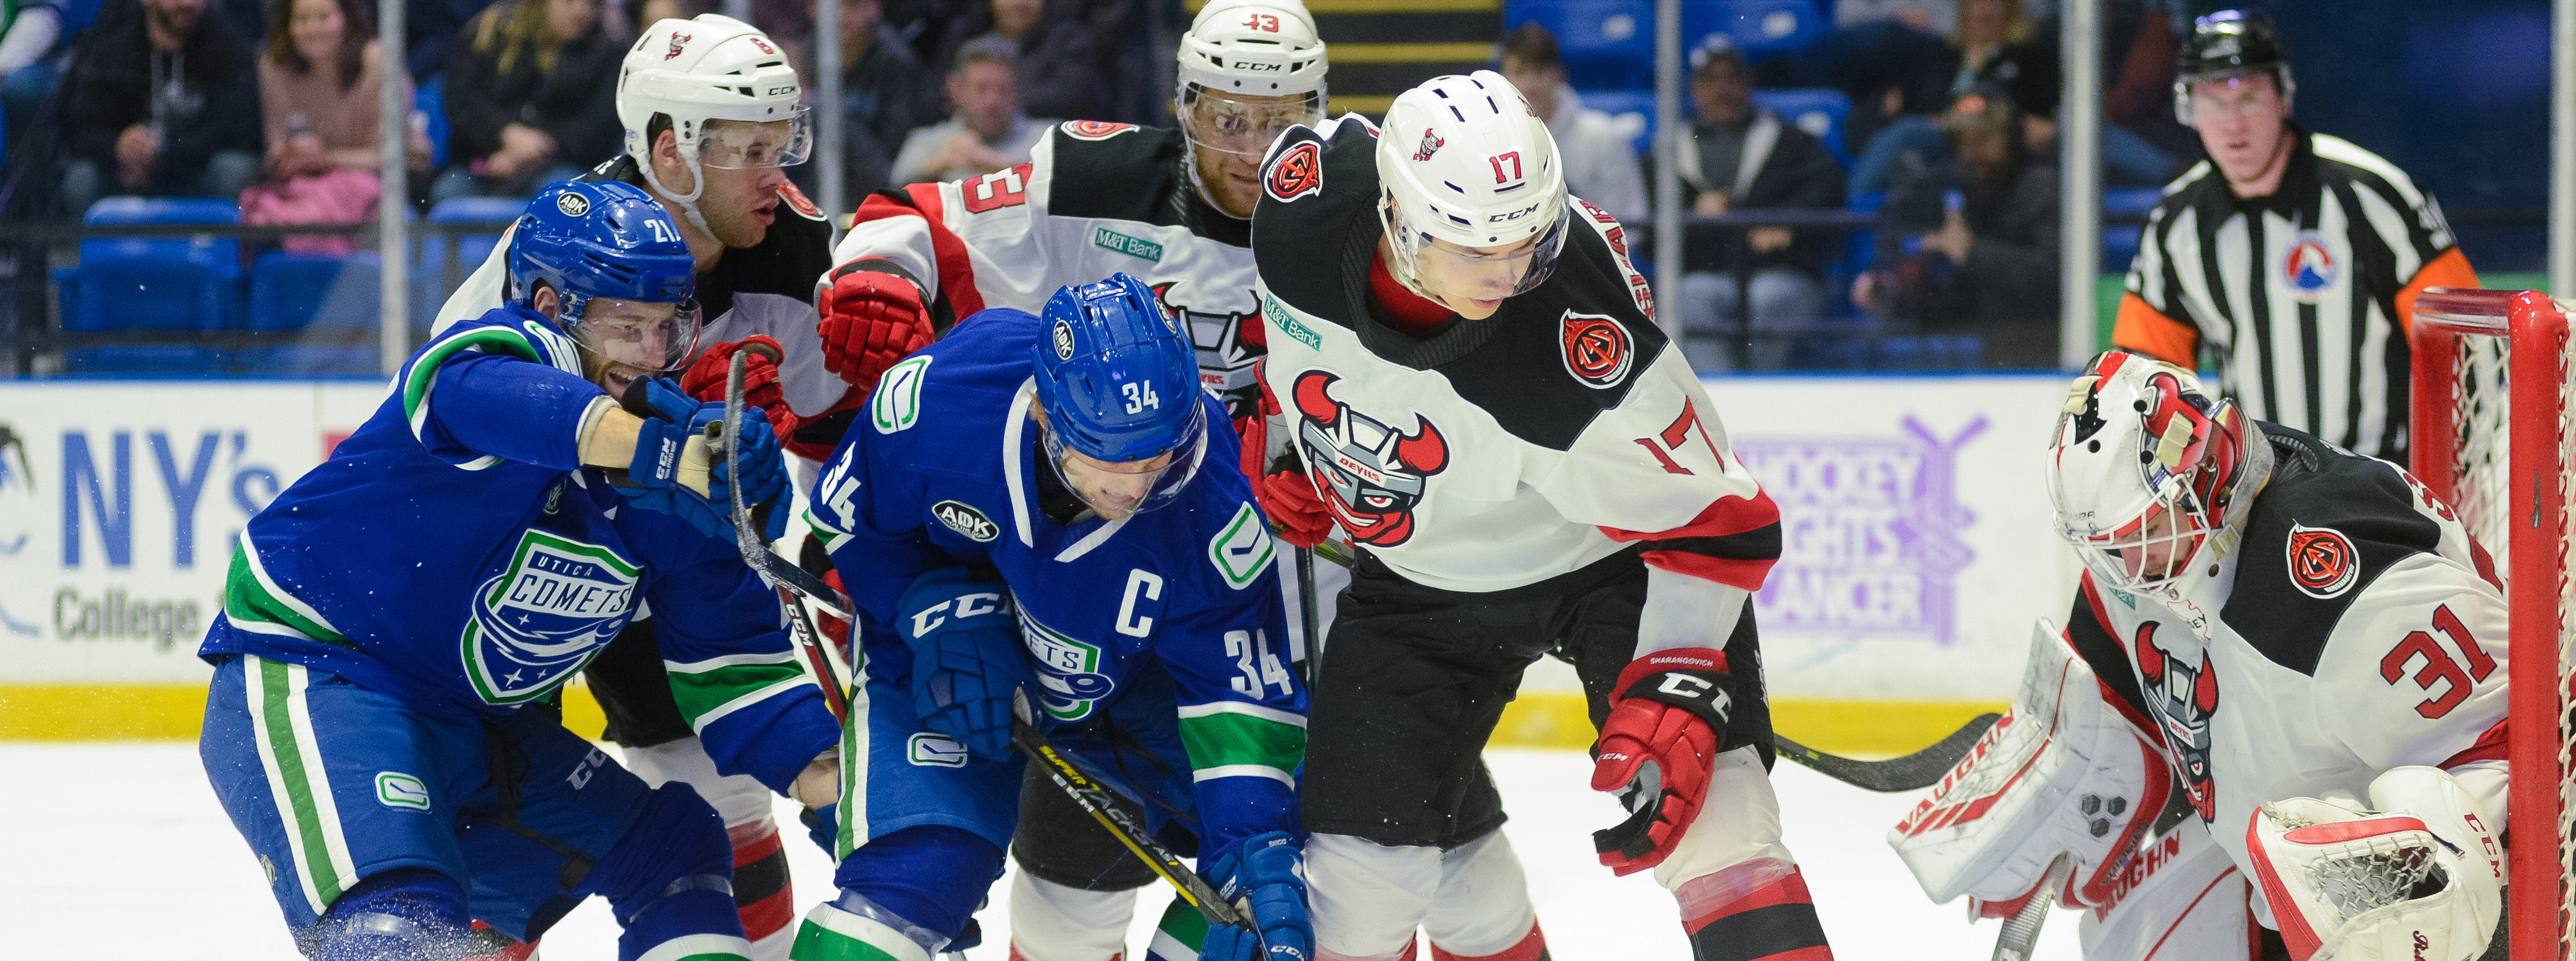 COMETS SQUANDER THREE-GOAL LEAD IN LOSS TO DEVILS